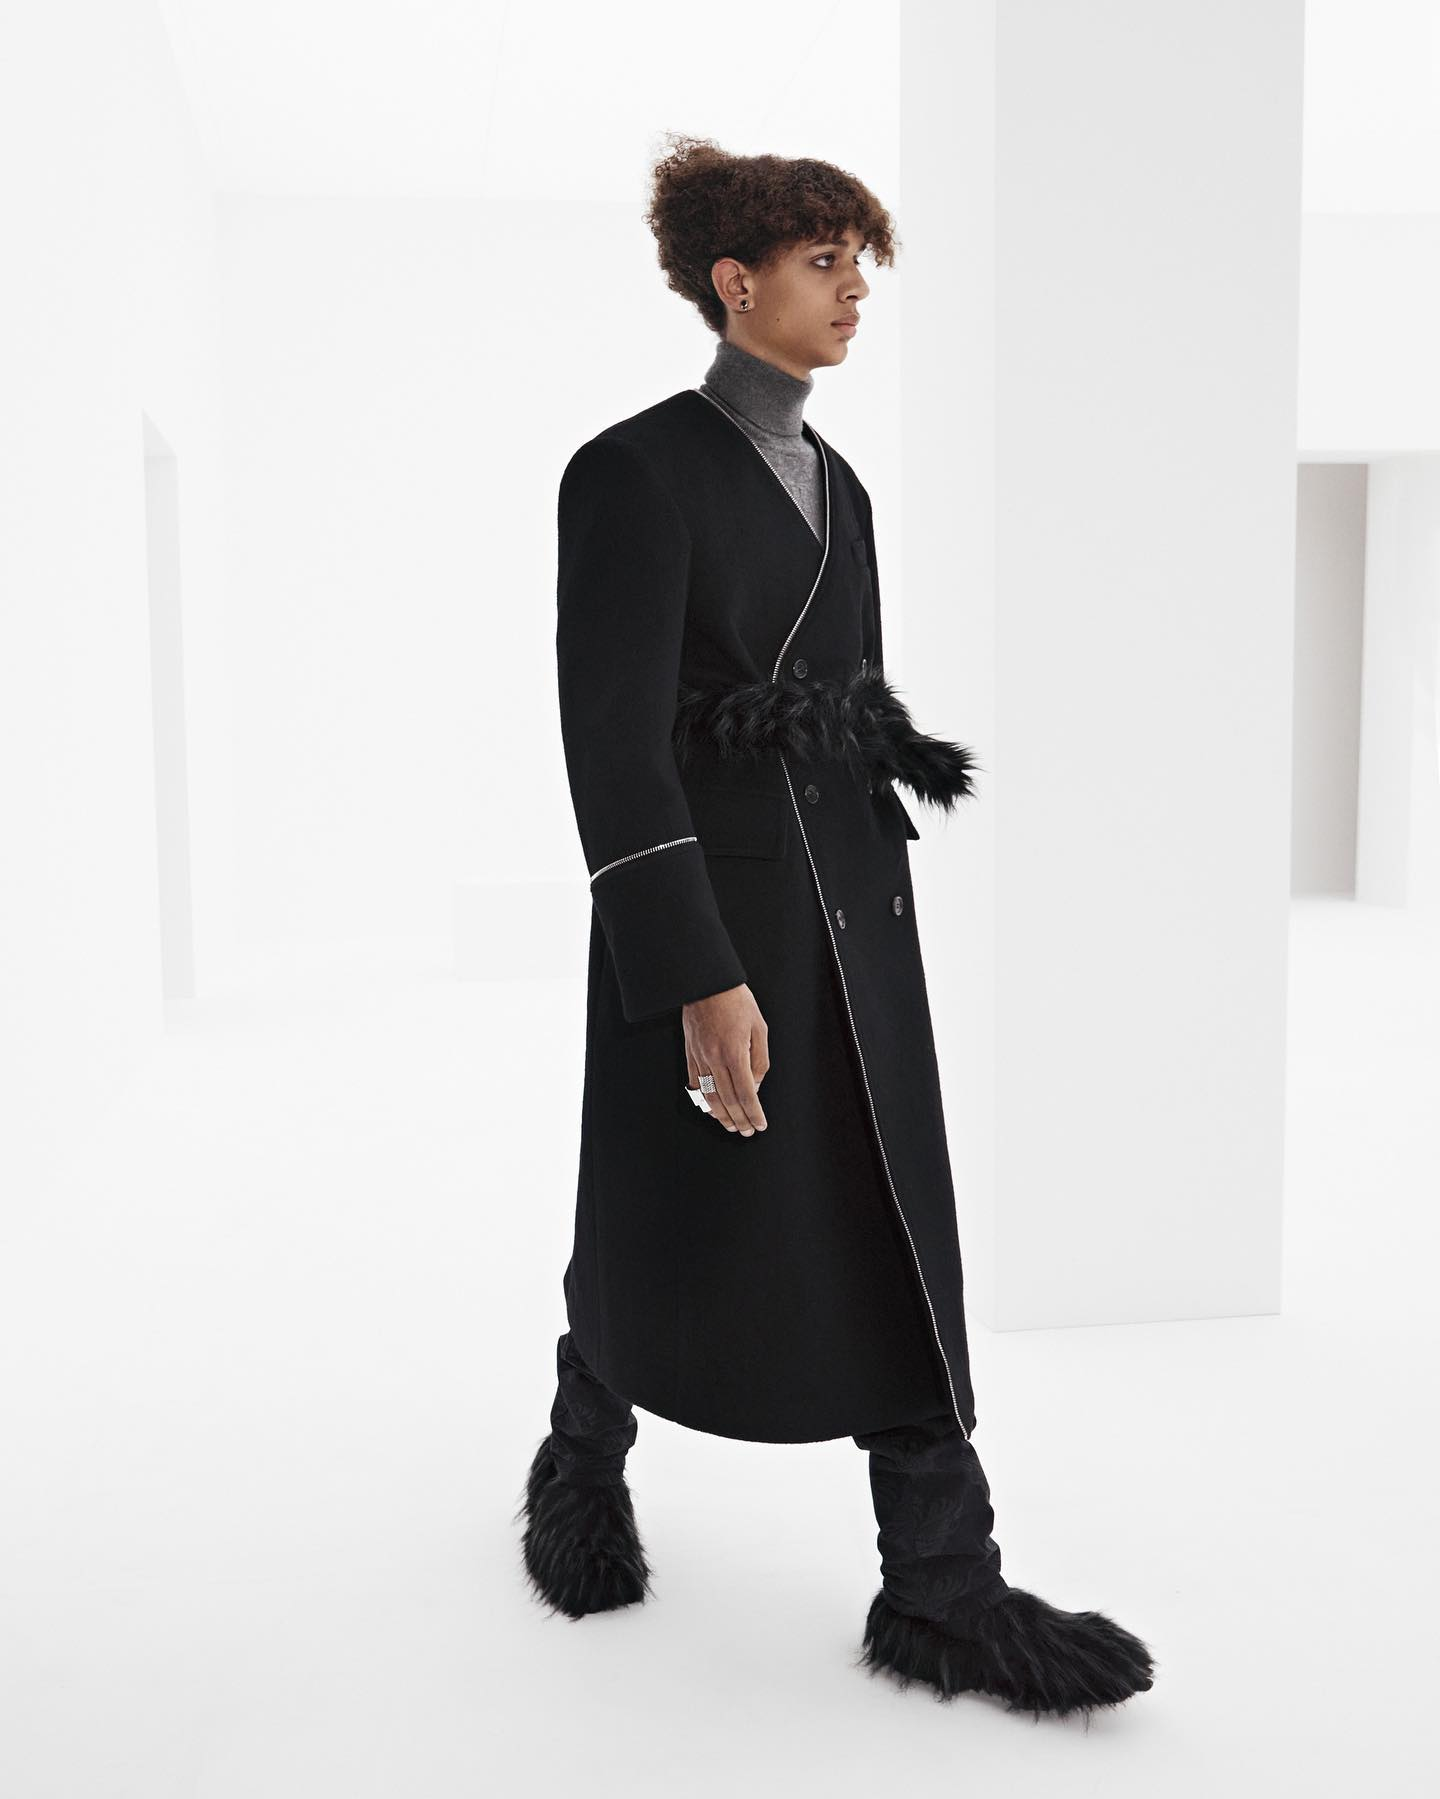 Joshua for WE11DONE FW21. Photography and direction by Willy Vanderperre, styling by Olivier Rizzo, hair by Anthony Turner, makeup by Karin Westerlundd, manicure by Anatole Rainey, casting by Ashley Brokaw.